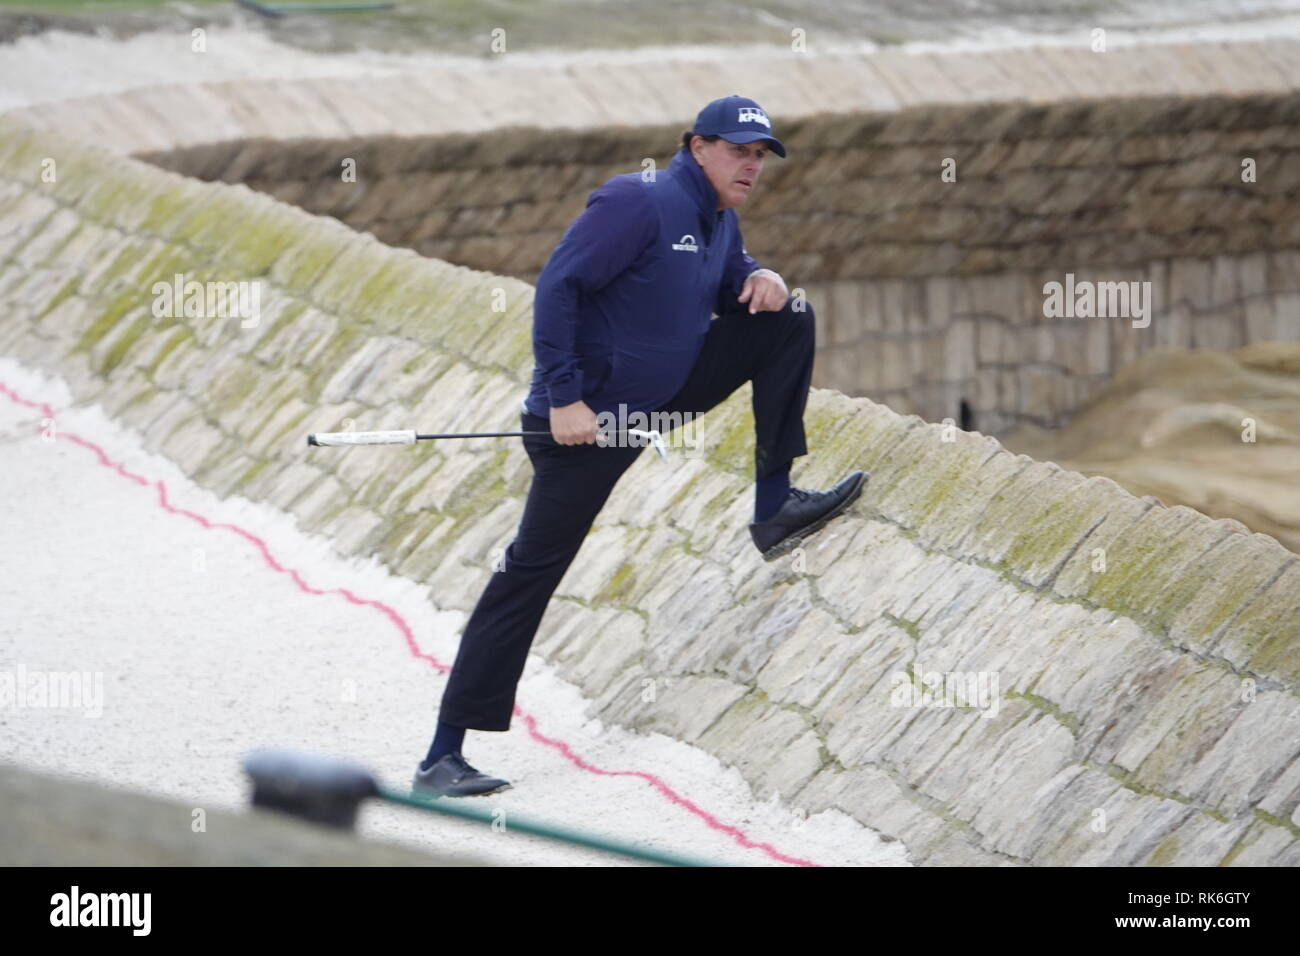 9th February, 2019  Pebble Beach Golf Links, CA, USA  Phil Mickleson strikes a pose on the sea wall defenses of the 18th as he trys to find playing partner Patrick Reed's errant ball during the third round at Pebble Beach Golf Course during the AT&T Pro-Am Credit: Motofoto/Alamy Live News - Stock Image